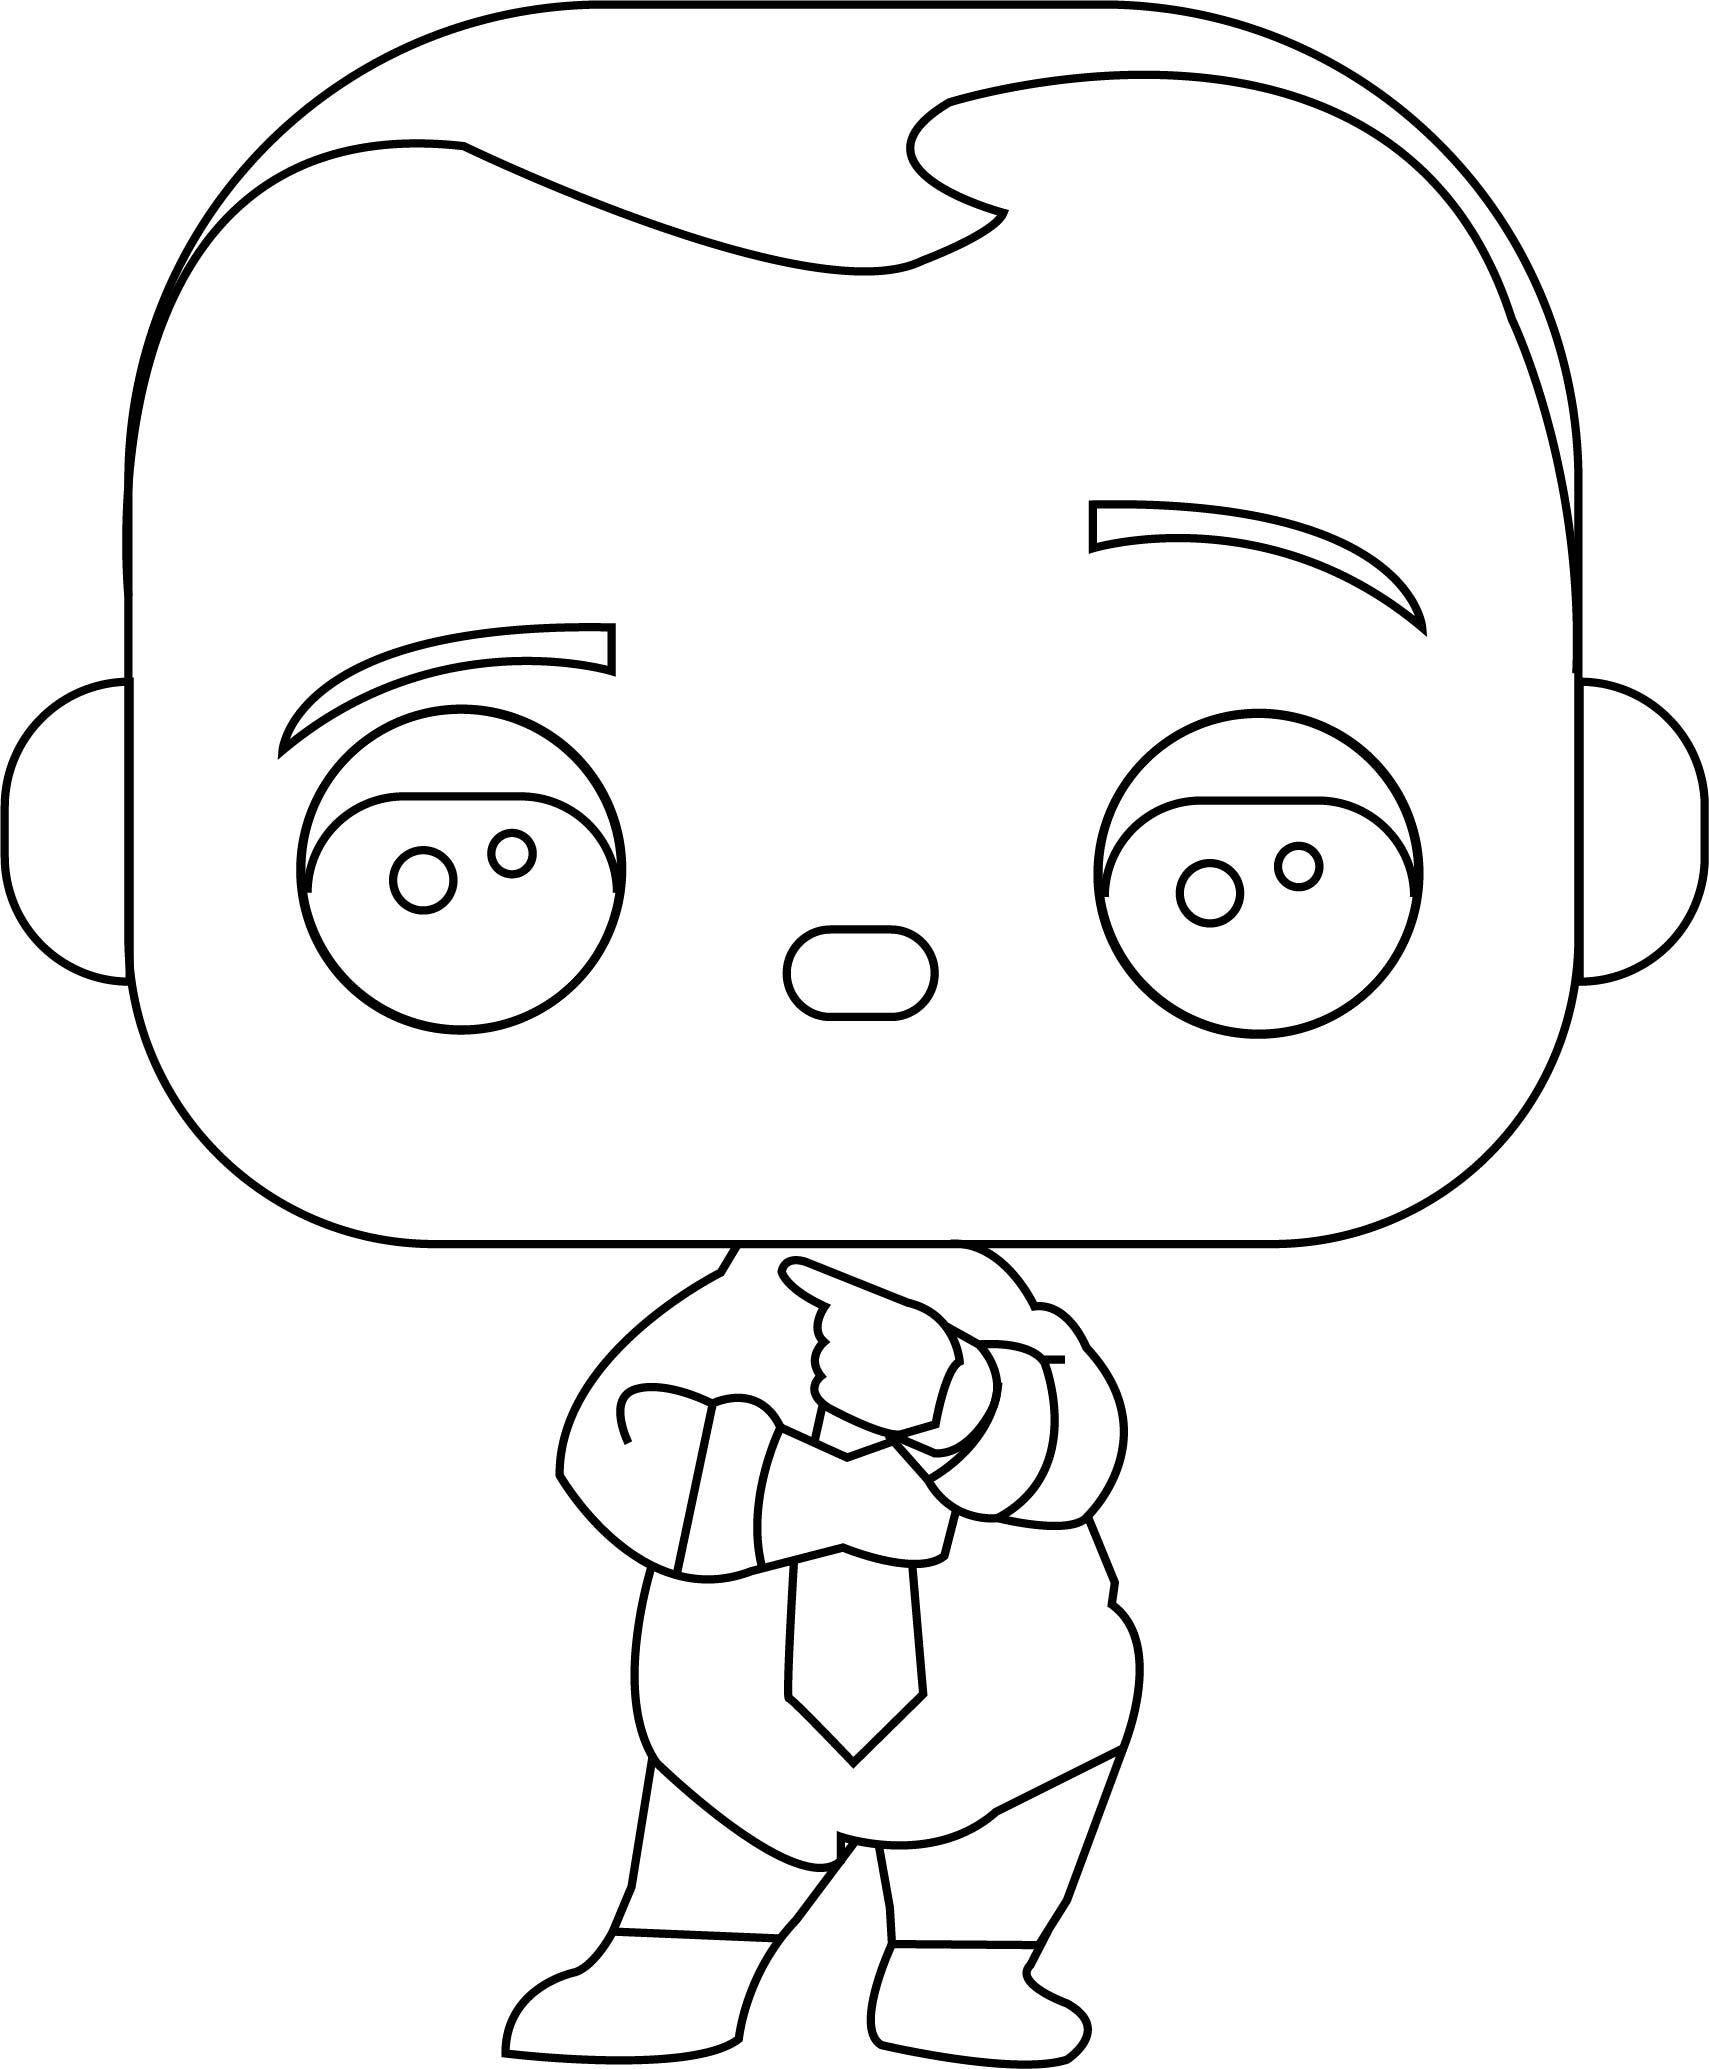 Boss Baby Funko Pop Coloring Page